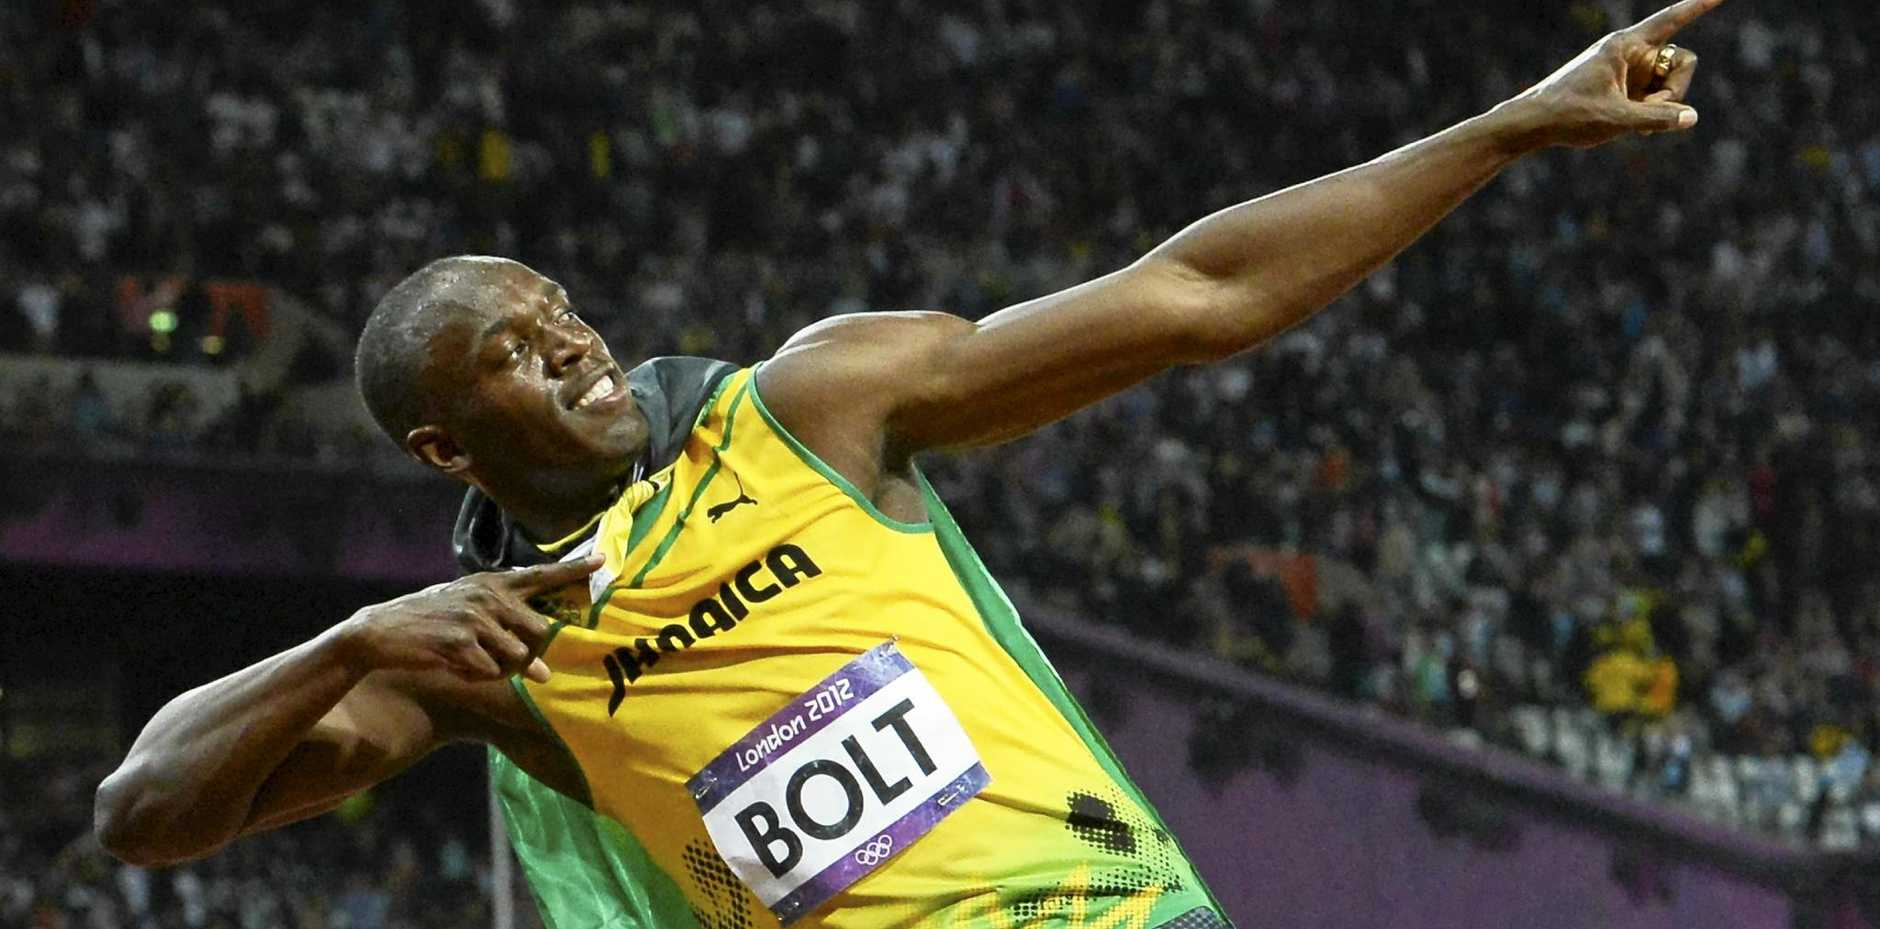 Usain Bolt is ready to defend his 100m crown.